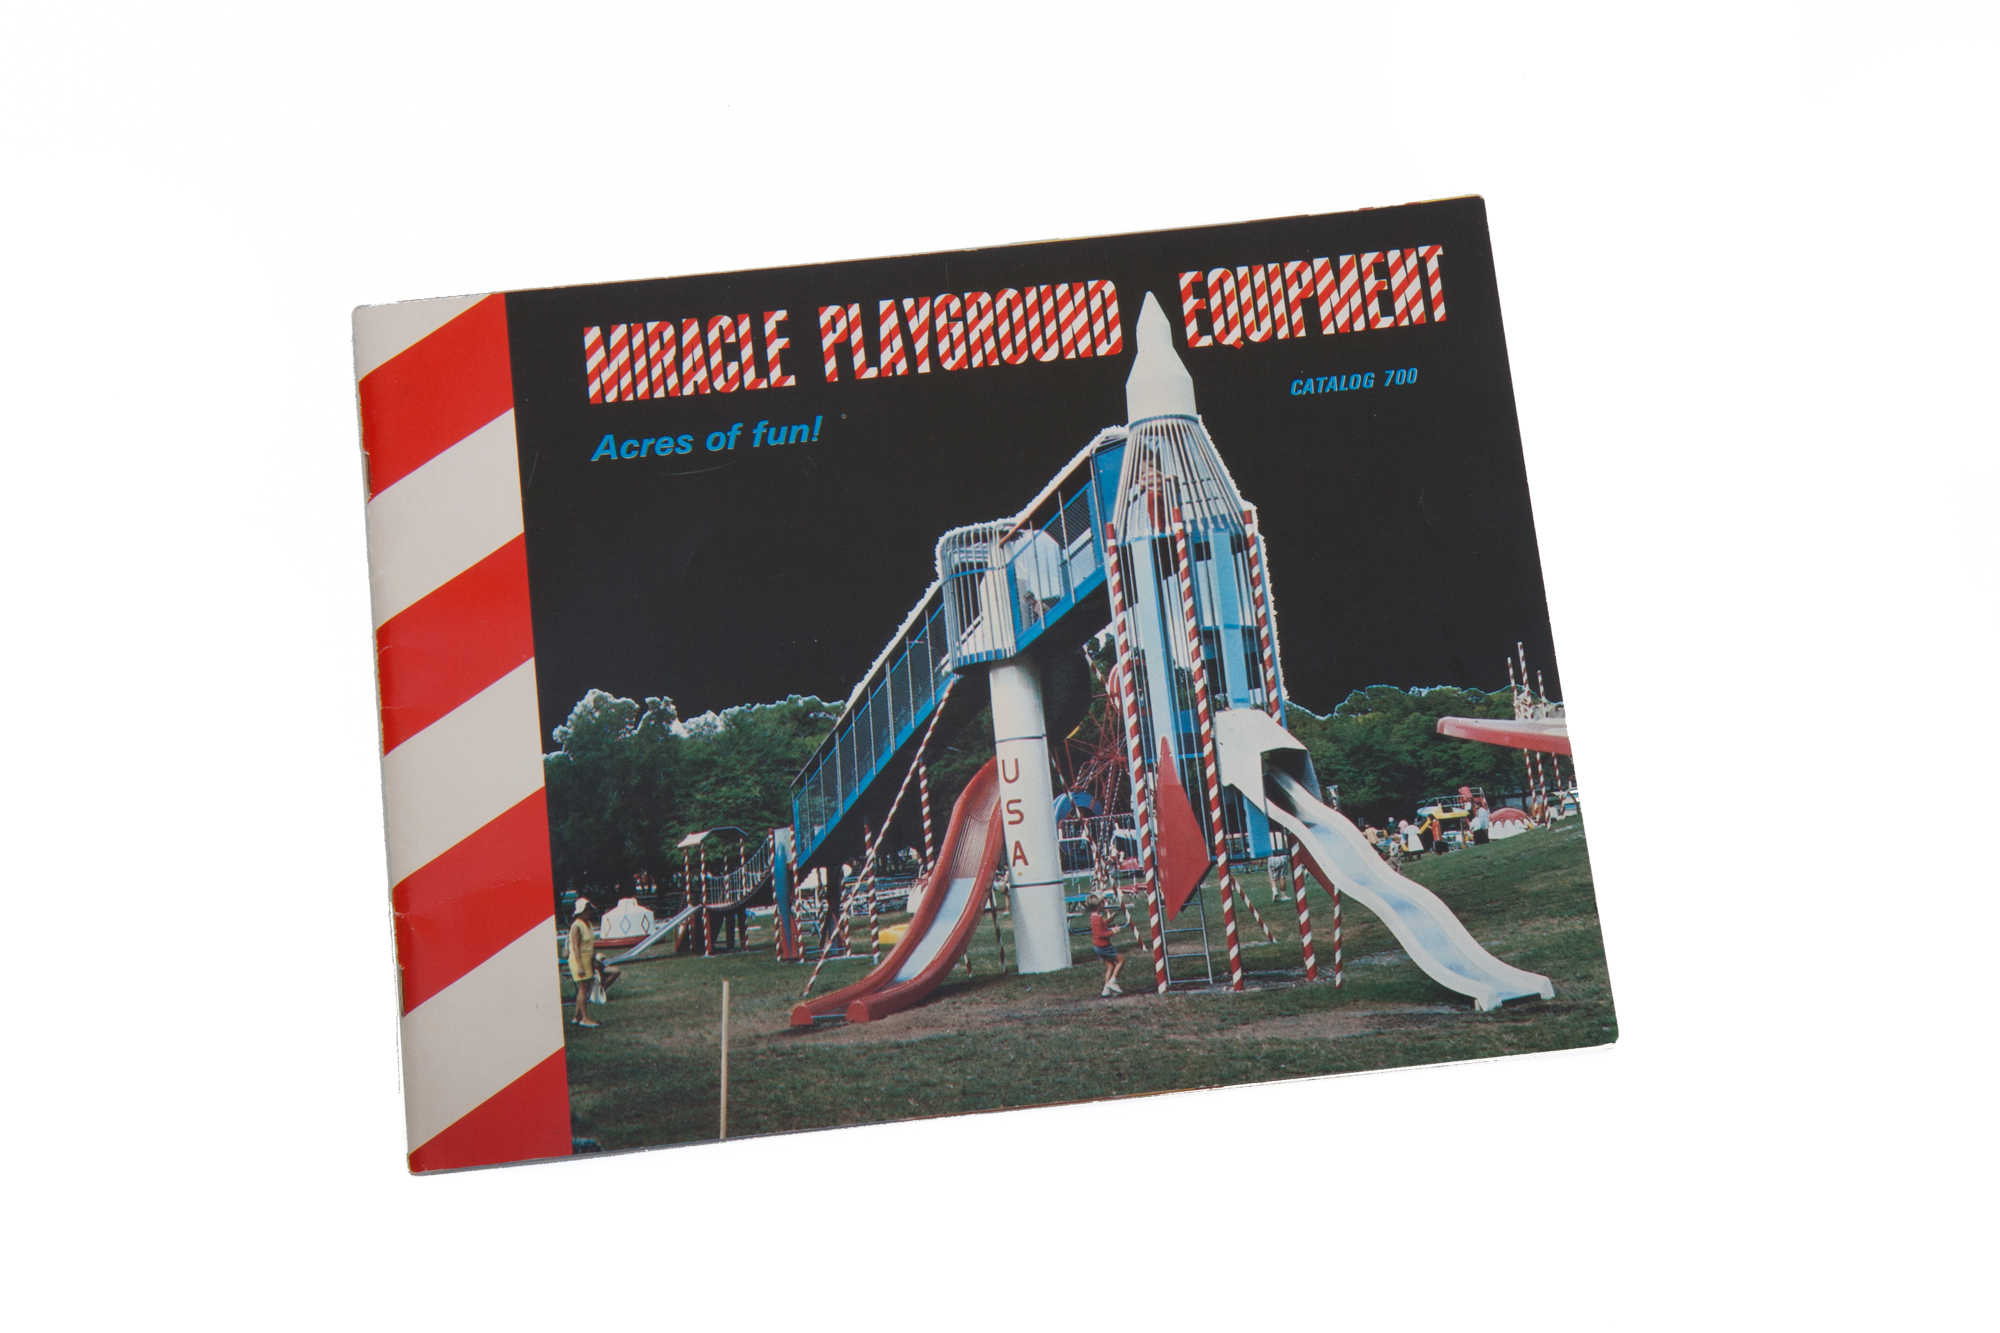 Catalog – Miracle Playground Equipment (1964)